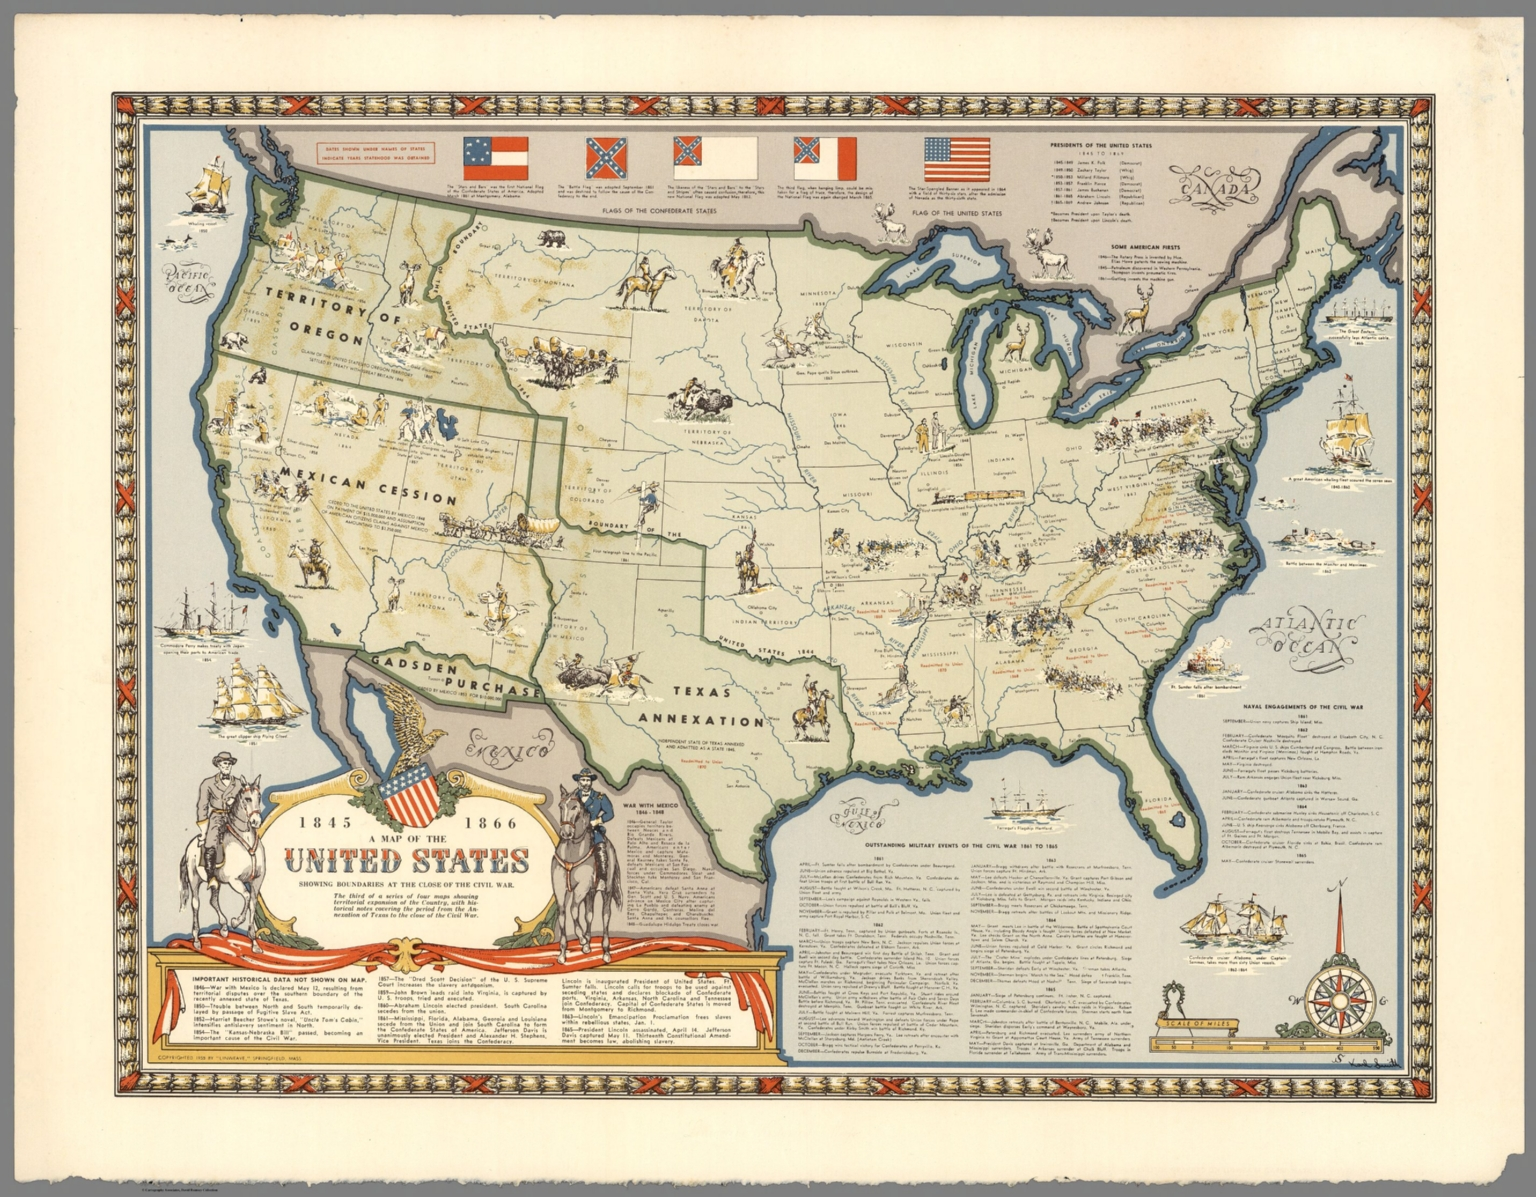 Map Of The United States Showing Boundaries 1845 1866 David - Us-map-1845